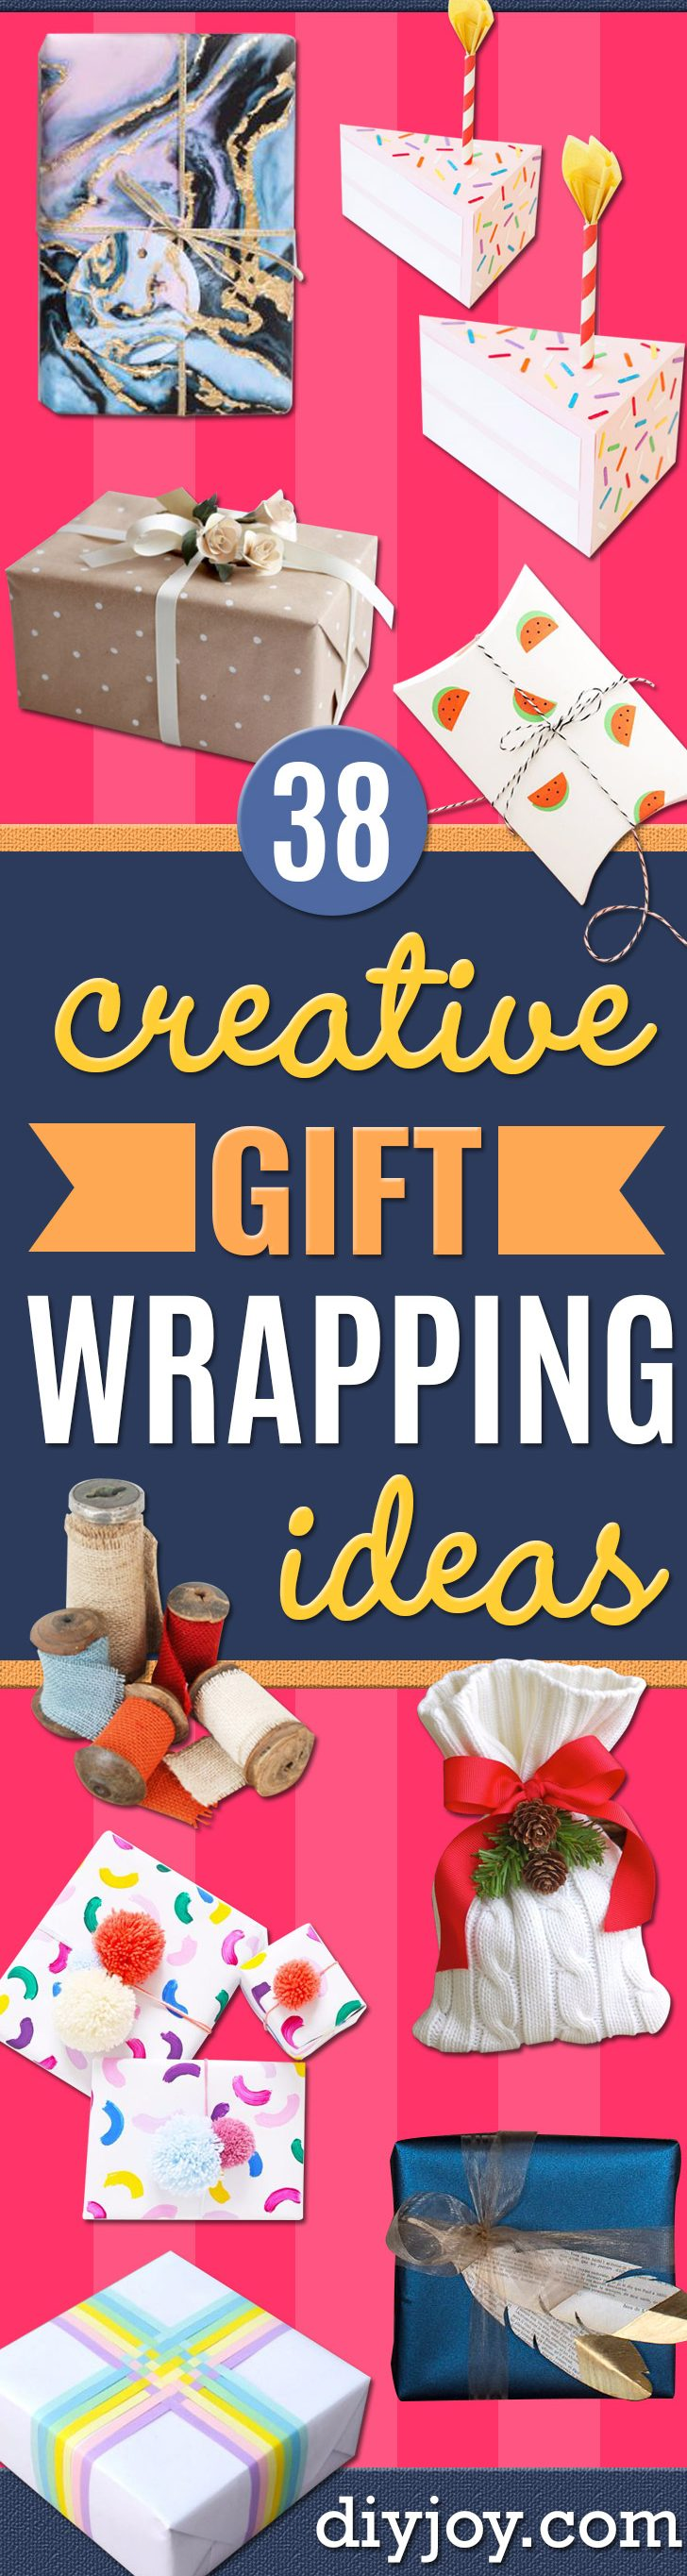 Cool Gift Wrapping Ideas - Creative Ways To Wrap Presents on A Budget - Best Christmas Gift Wrap Ideas - How To Make Gift Bags, Reuse Wrapping Paper, Make Bows and Tags - Cute and Easy Ideas for Wrapping Gifts for the Holidays - Step by Step Instructions and Photo Tutorials